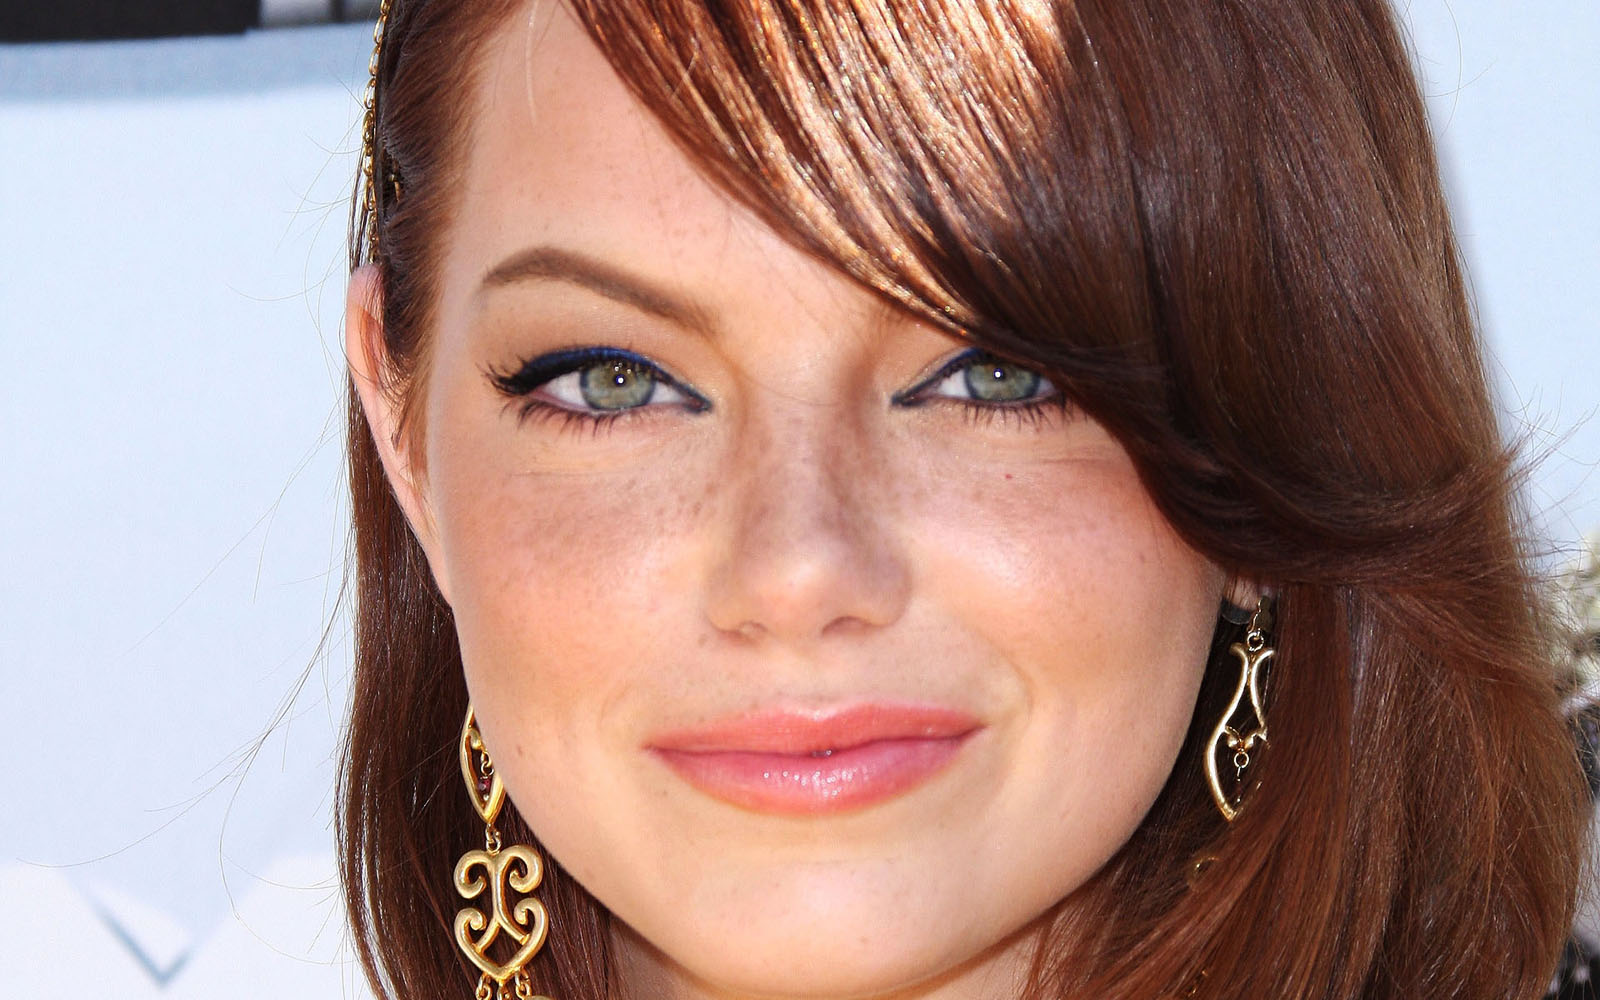 spider man actress emma stone wallpapers - Spider Man Actress Emma Stone Wallpapers HD Wallpapers